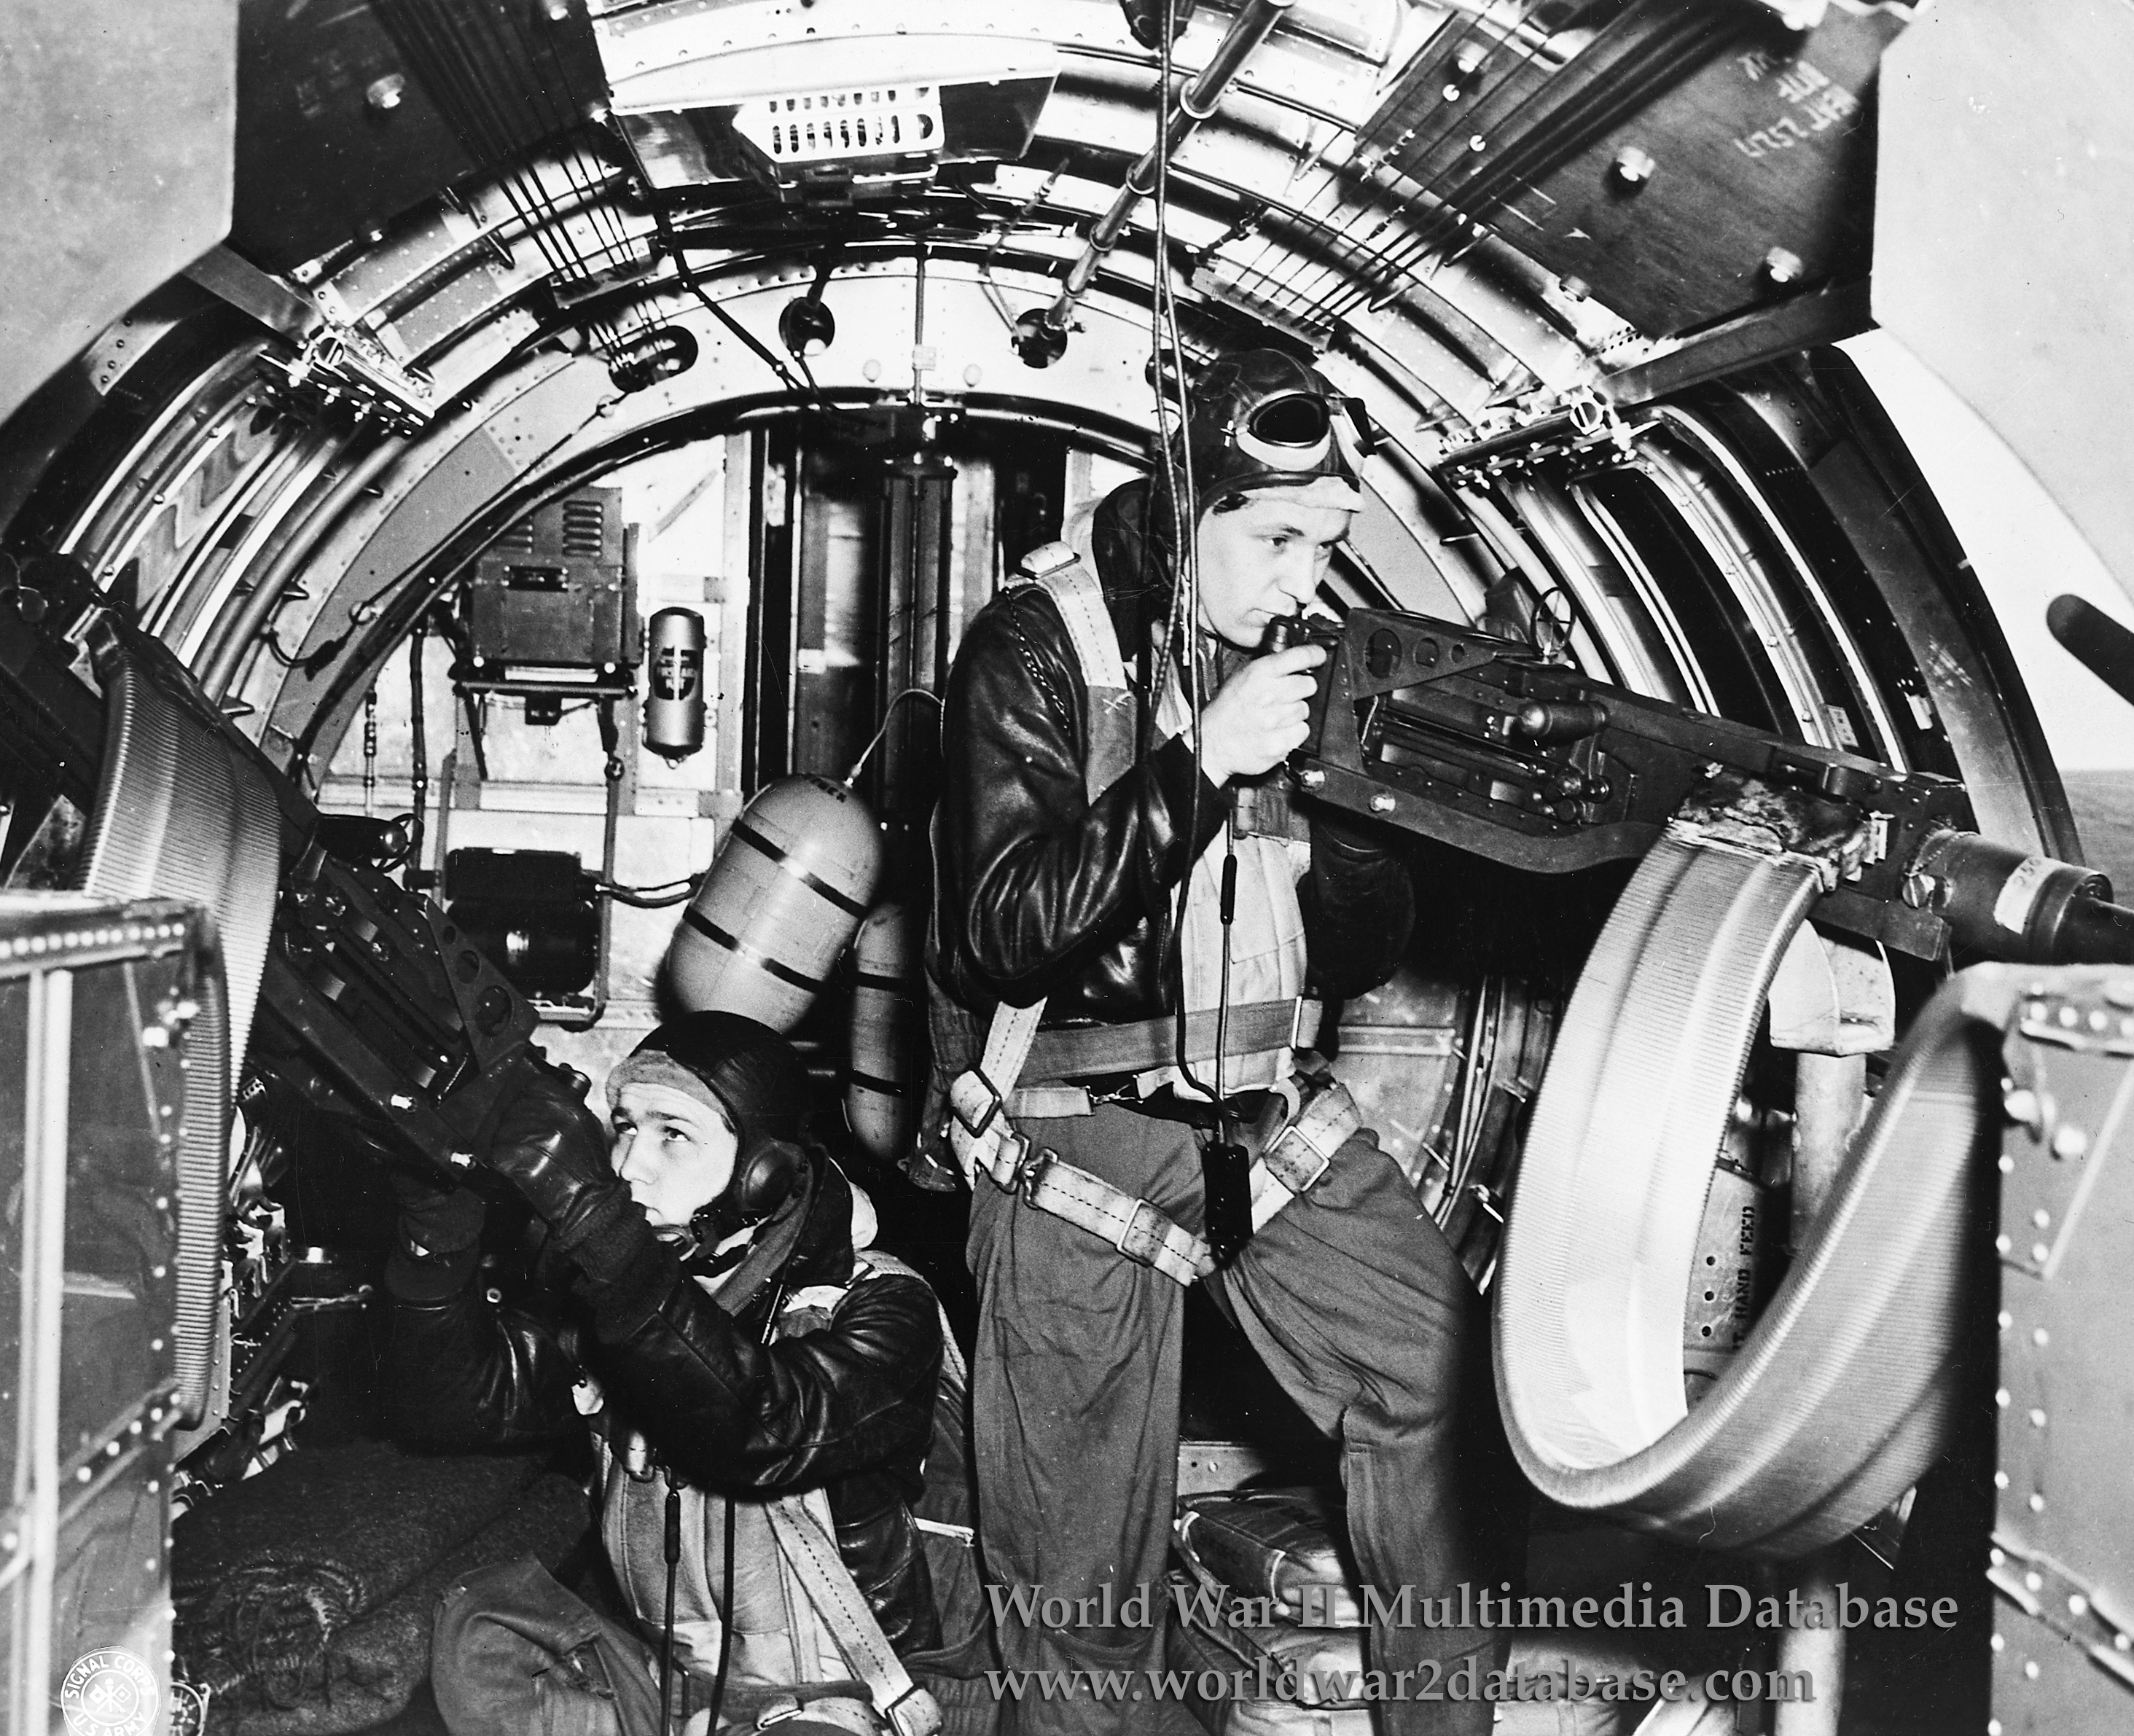 wwii0002 jpg B 17 Flying Fortress Photographs World War Ii Database